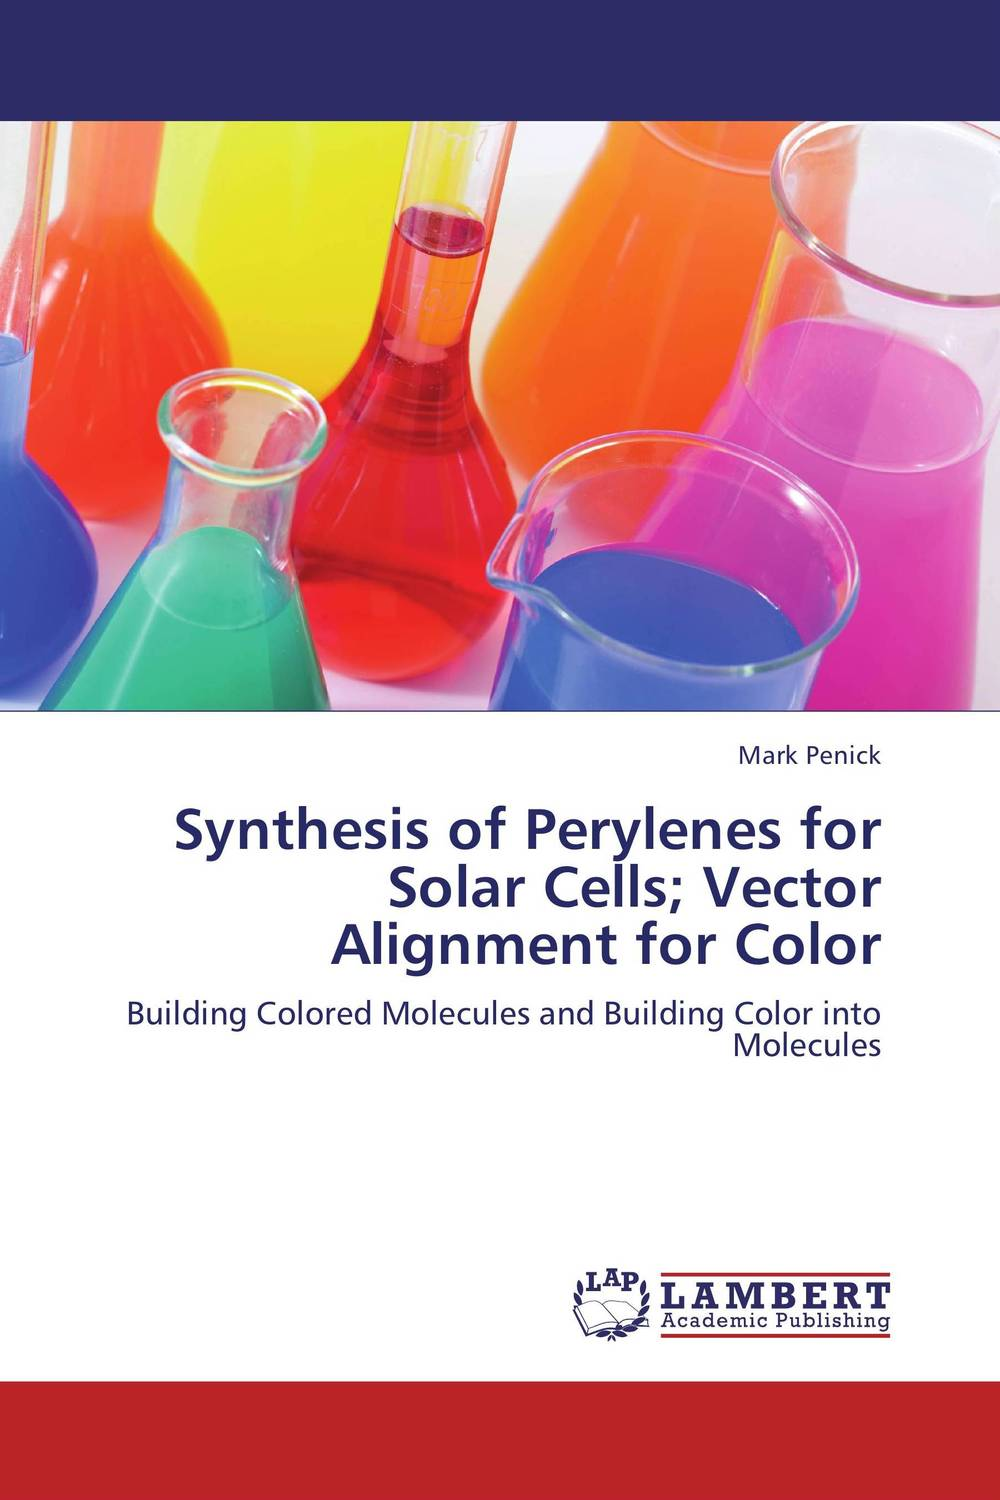 Synthesis of Perylenes for Solar Cells; Vector Alignment for Color solution processed organic solar cells